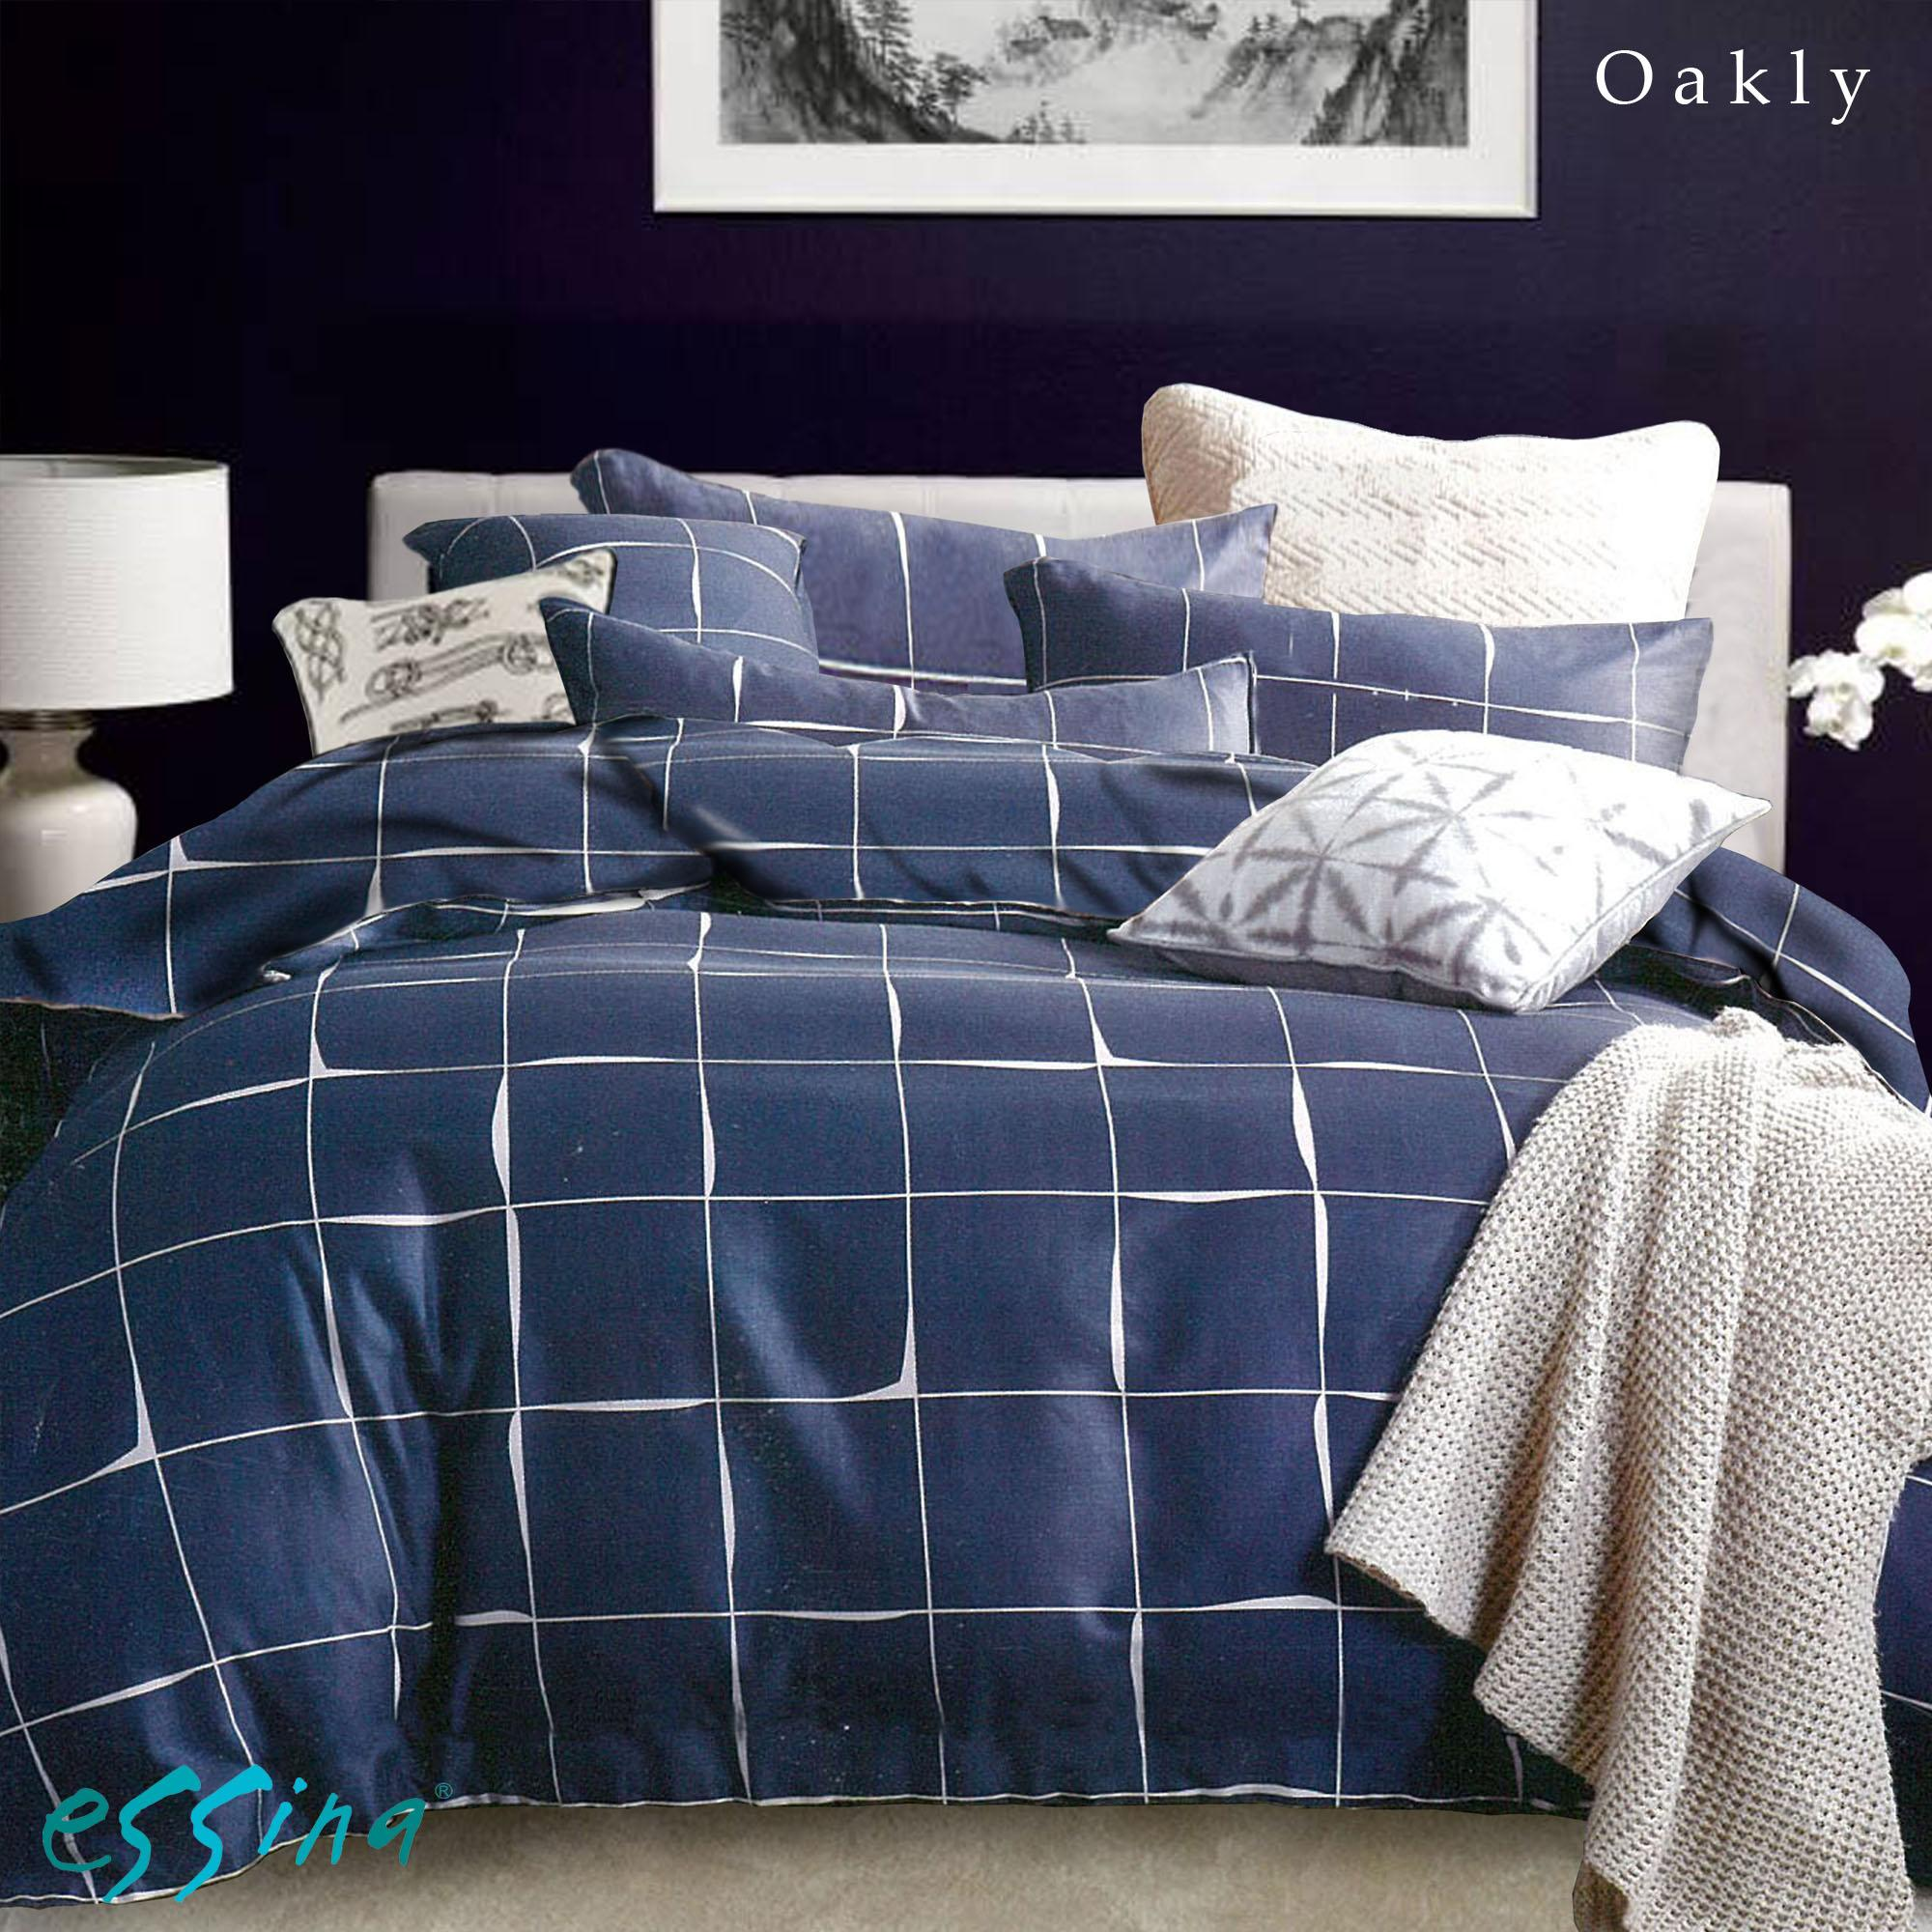 Essina Okley 100% Cotton Rosetta Collection 620TC Fitted Bed sheet set Cadar SUPER SINGLE